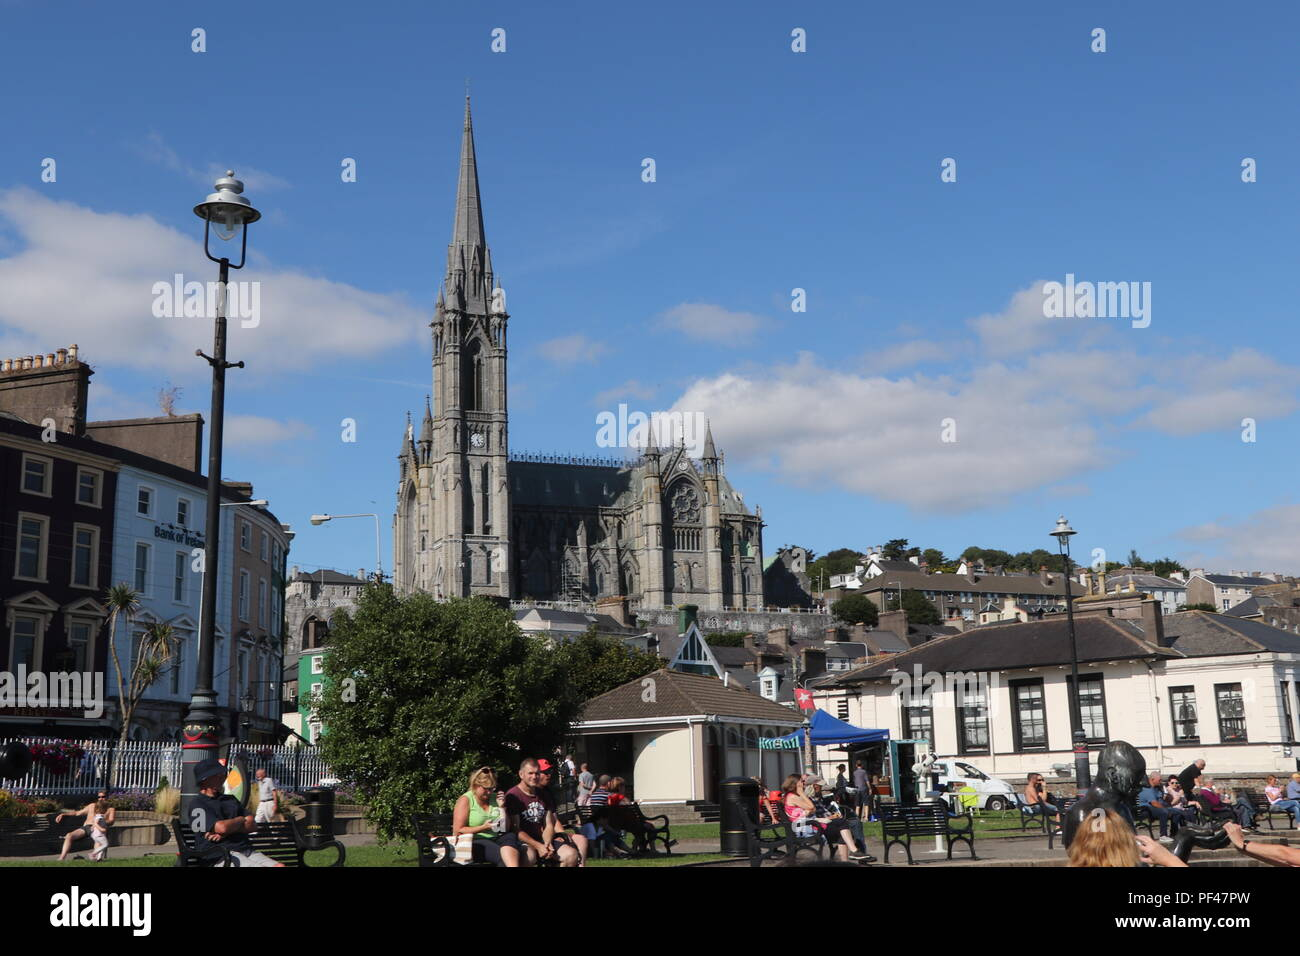 The lovely little town of Cobh, from the main square, with the magnificent centuries old Cathedral as a focal point. Stock Photo